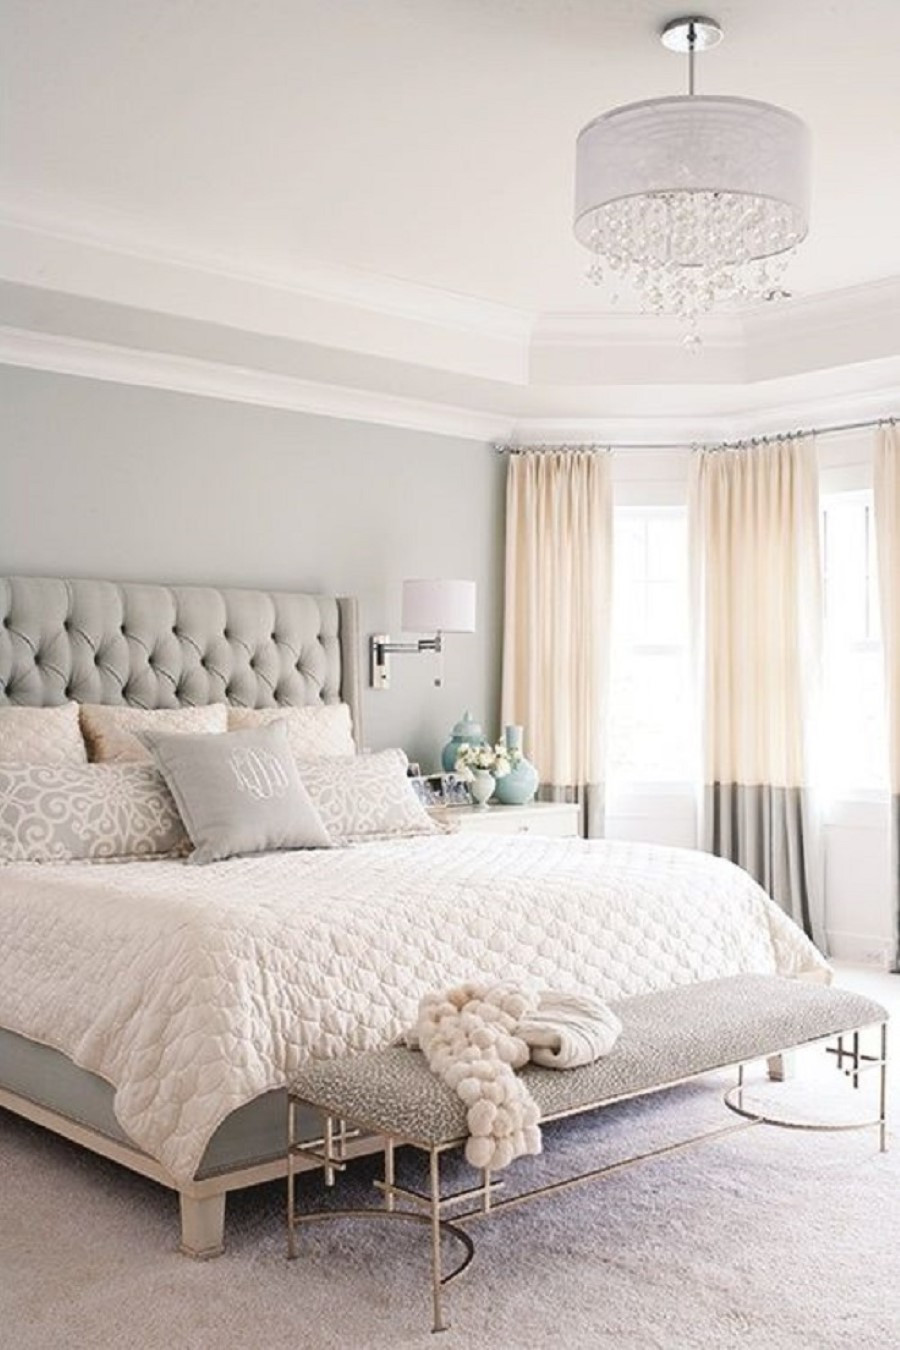 Best ideas about Paint Colors For Bedroom . Save or Pin Best Paint Colors for Small Room – Some Tips Now.